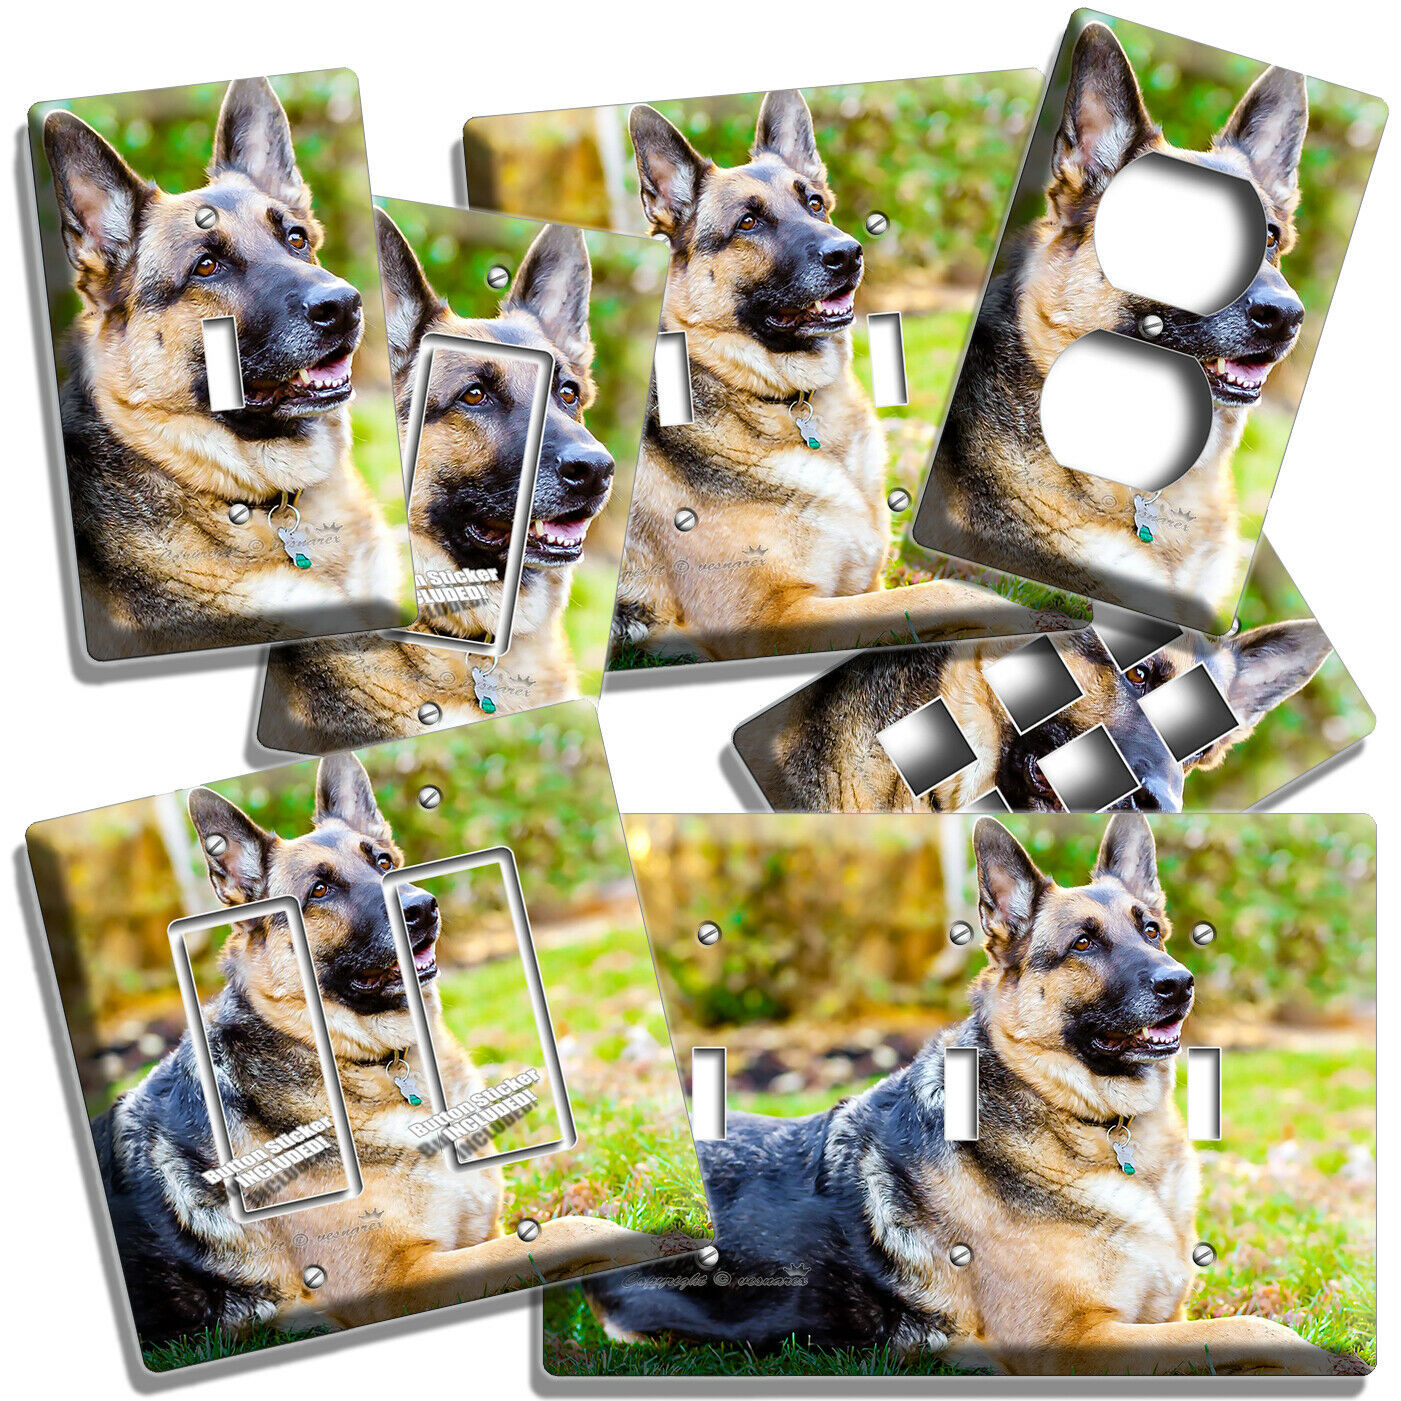 GERMAN SHEPHERD DOG RELAXING LIGHT SWITCH OUTLET WALL COVER GROOMING SALON DECOR